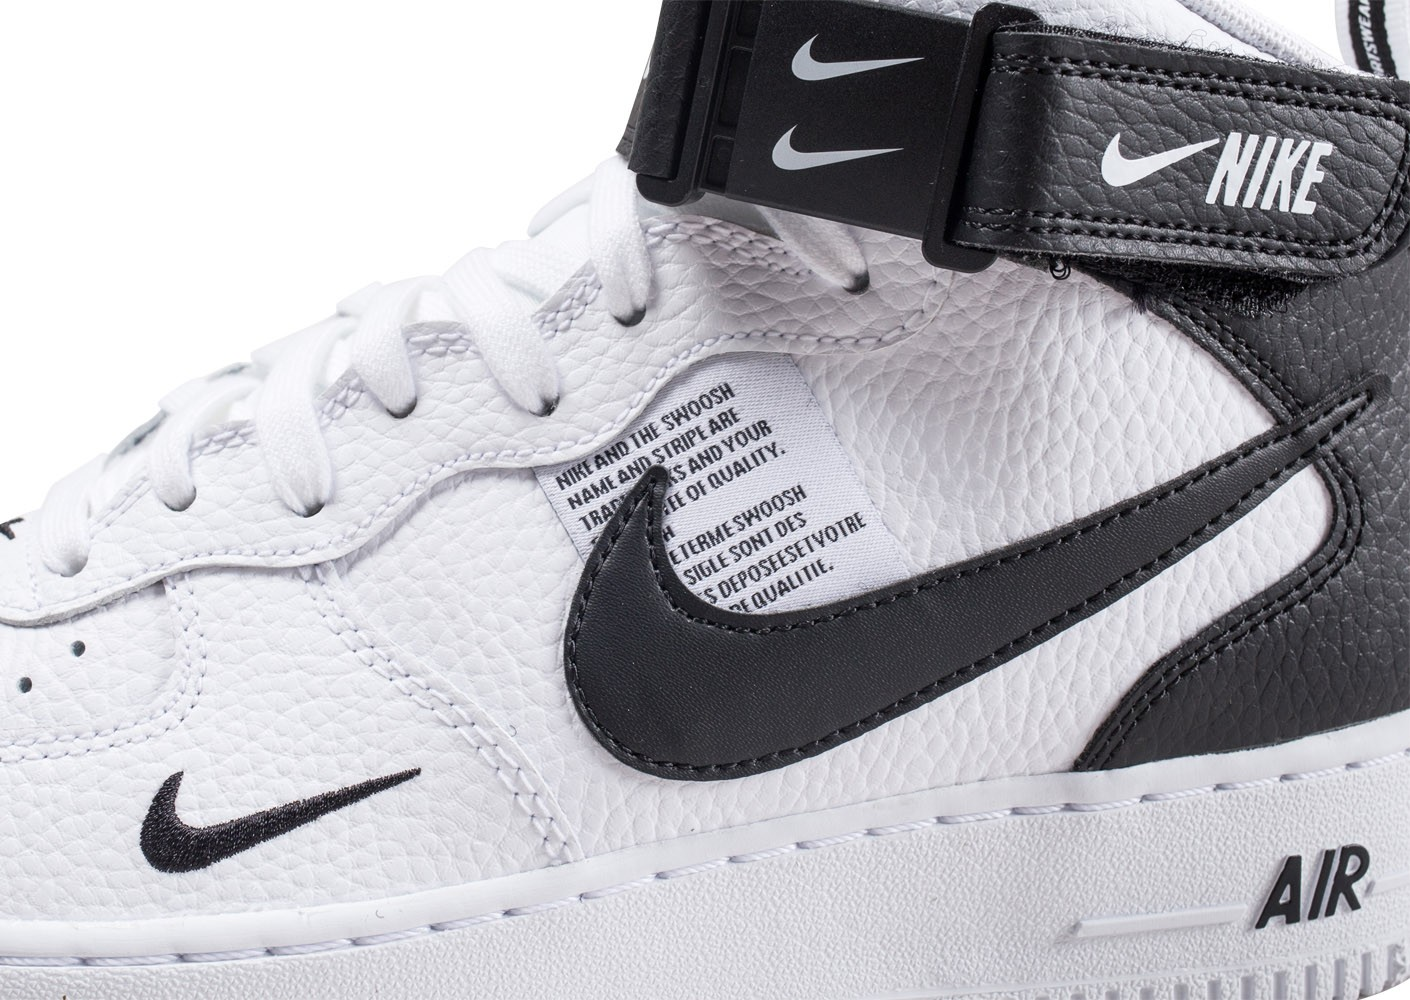 Nike Mid 07 Chaussures Air Blanche Force 1 Lv8 Et Noire